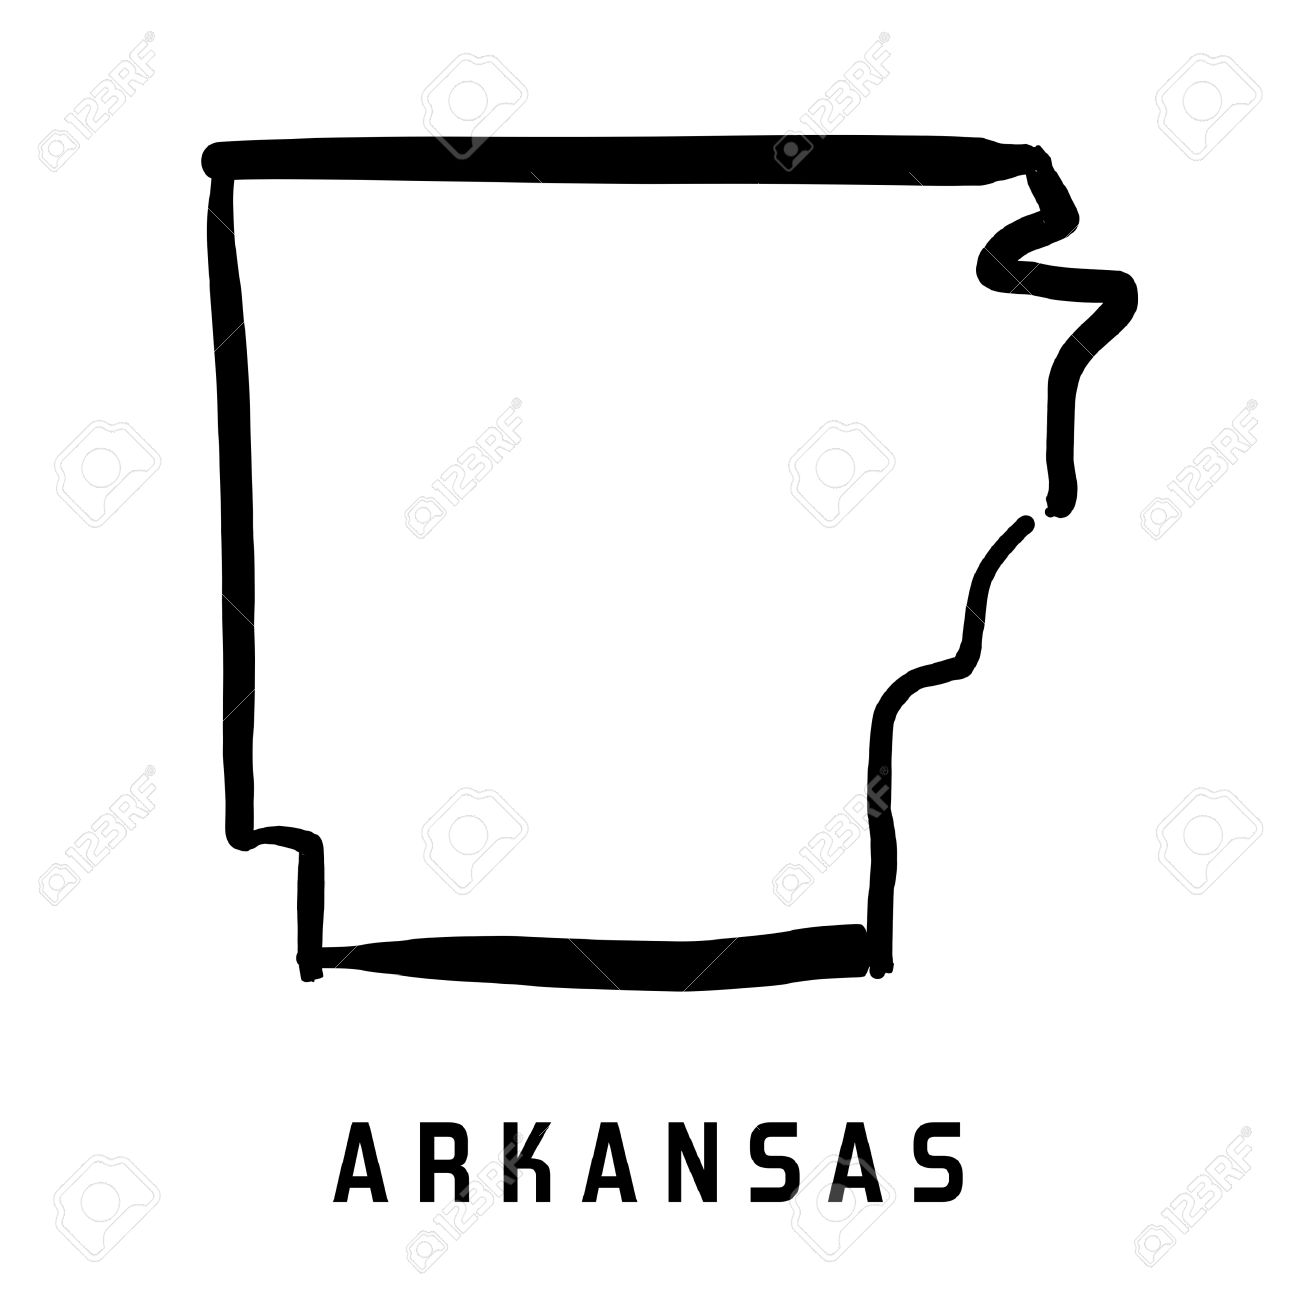 Arkansas State Map Outline   Smooth Simplified US State Shape